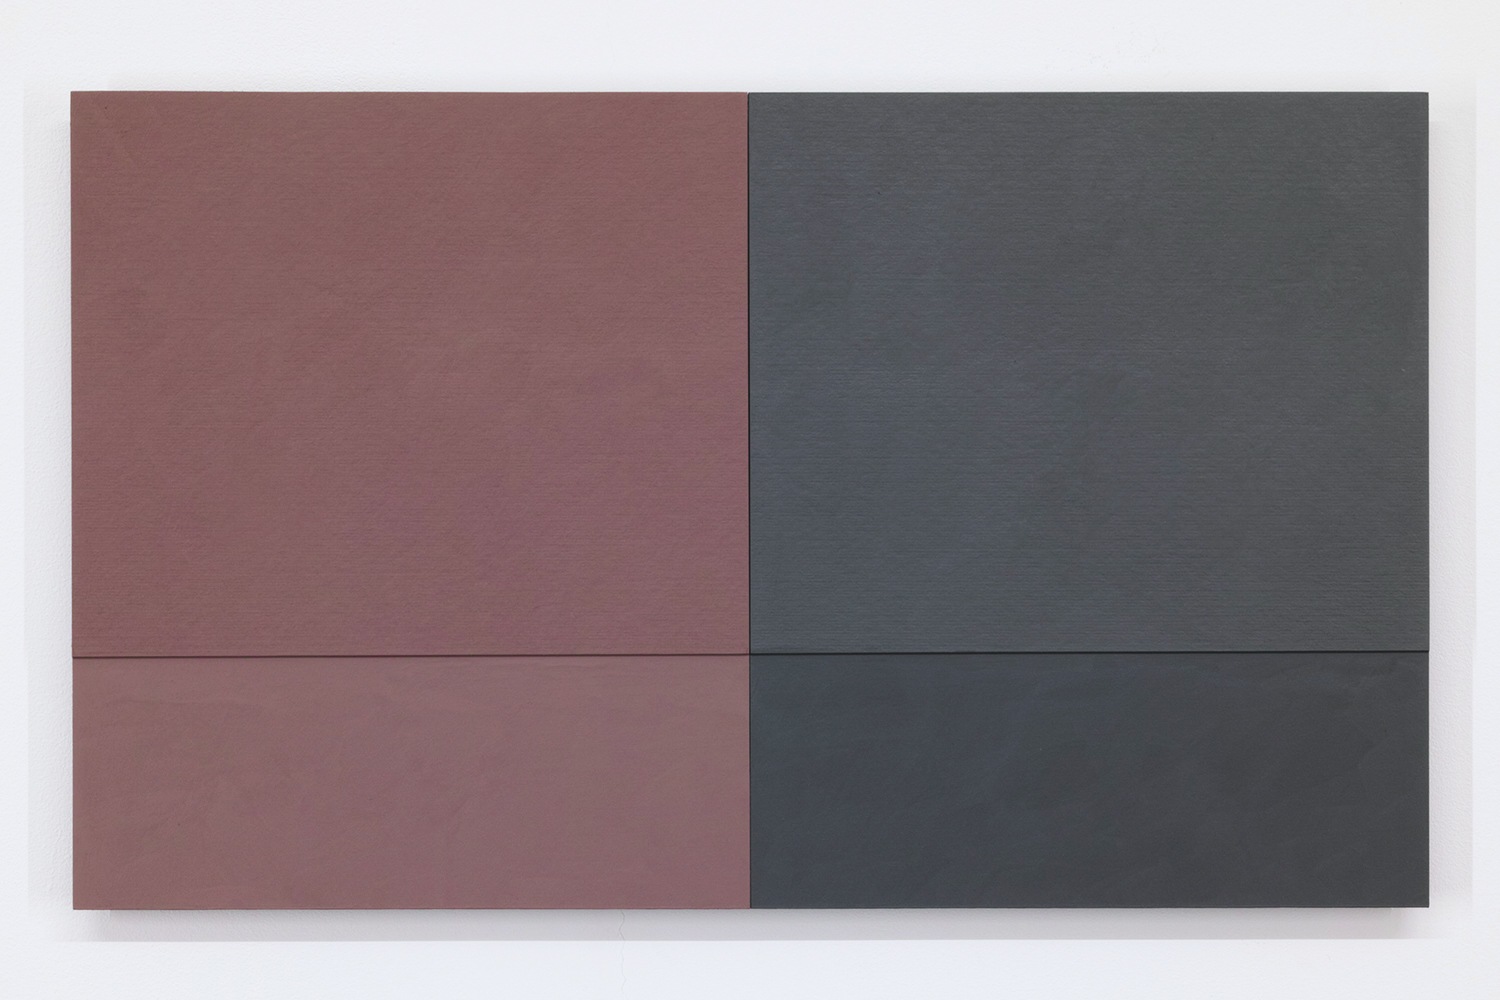 TS1819<br>Colour Gesso on Panel, 30 x 25 cm each (set of 2), 2018